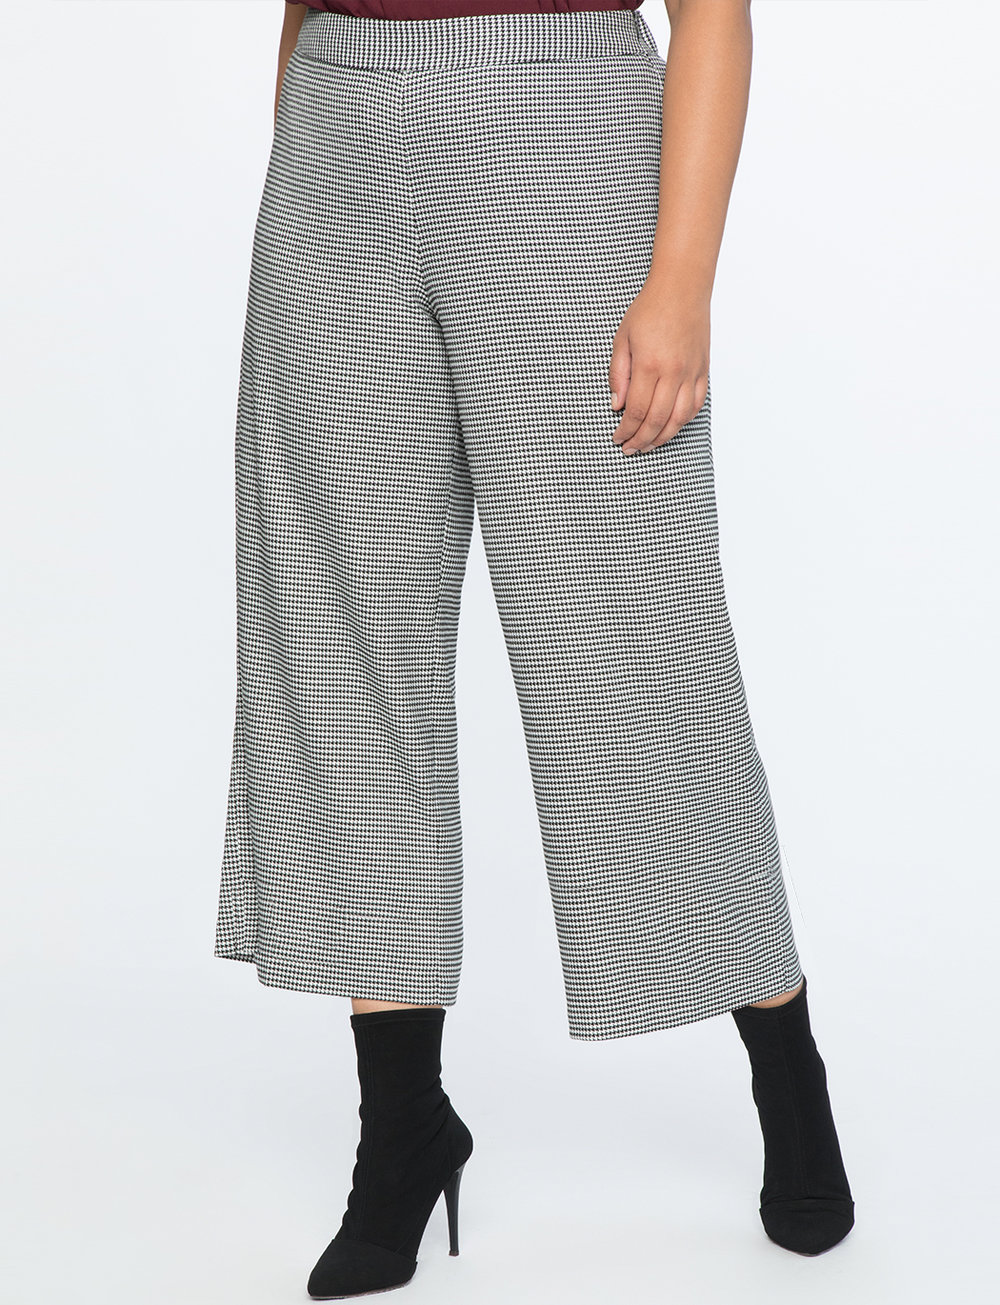 Houndstooth Crop Trouser    $39.90